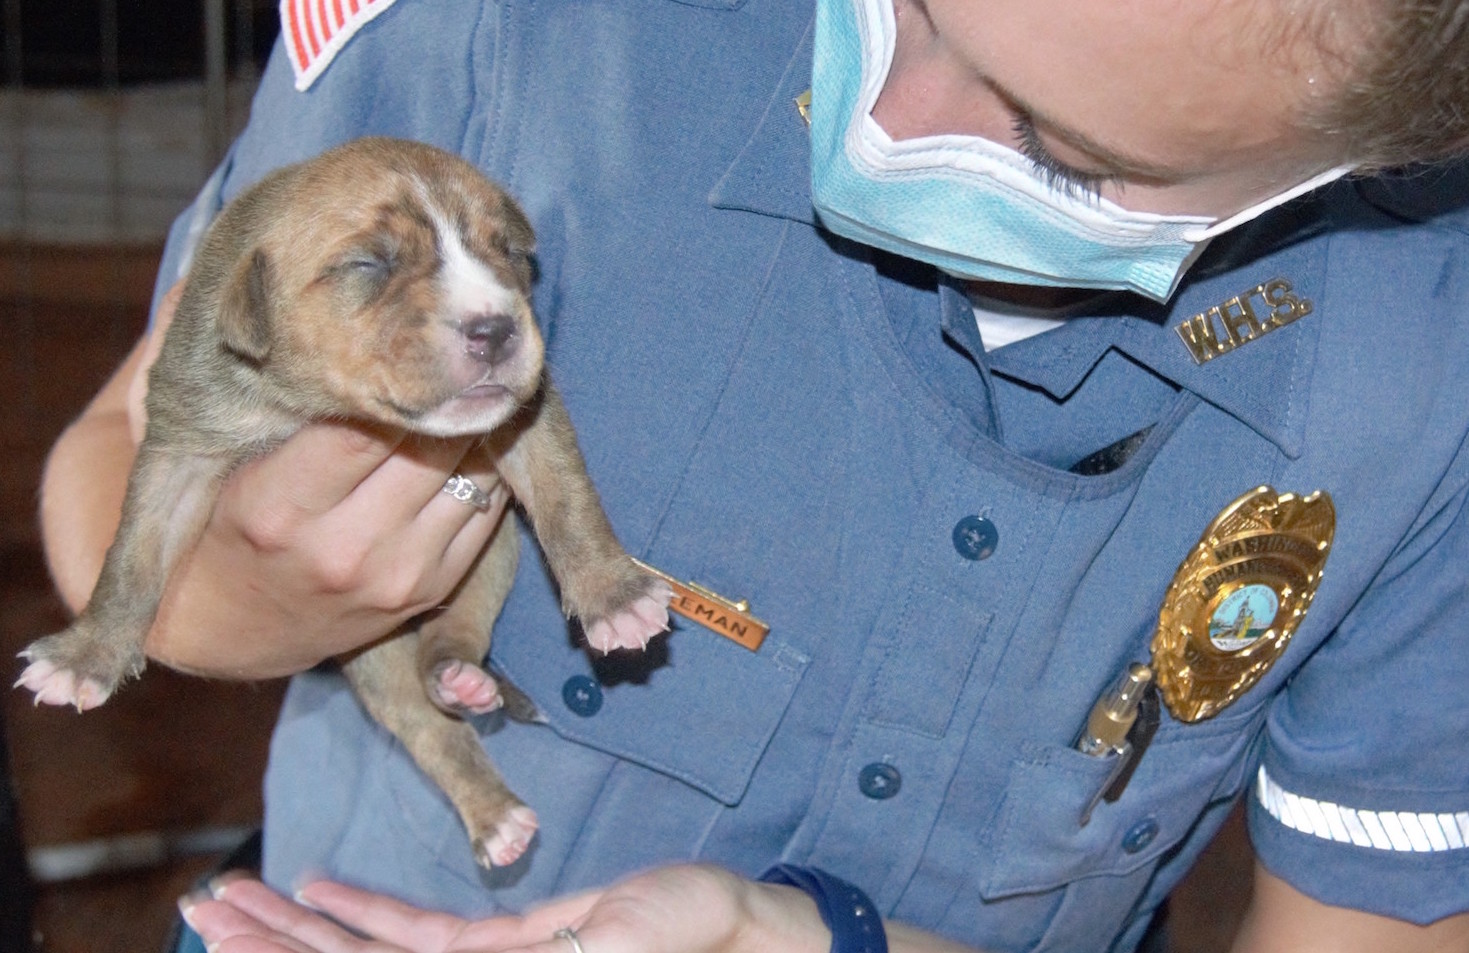 Our teams are available day or night to help. For animal related emergencies call 202-723-5730.  icon